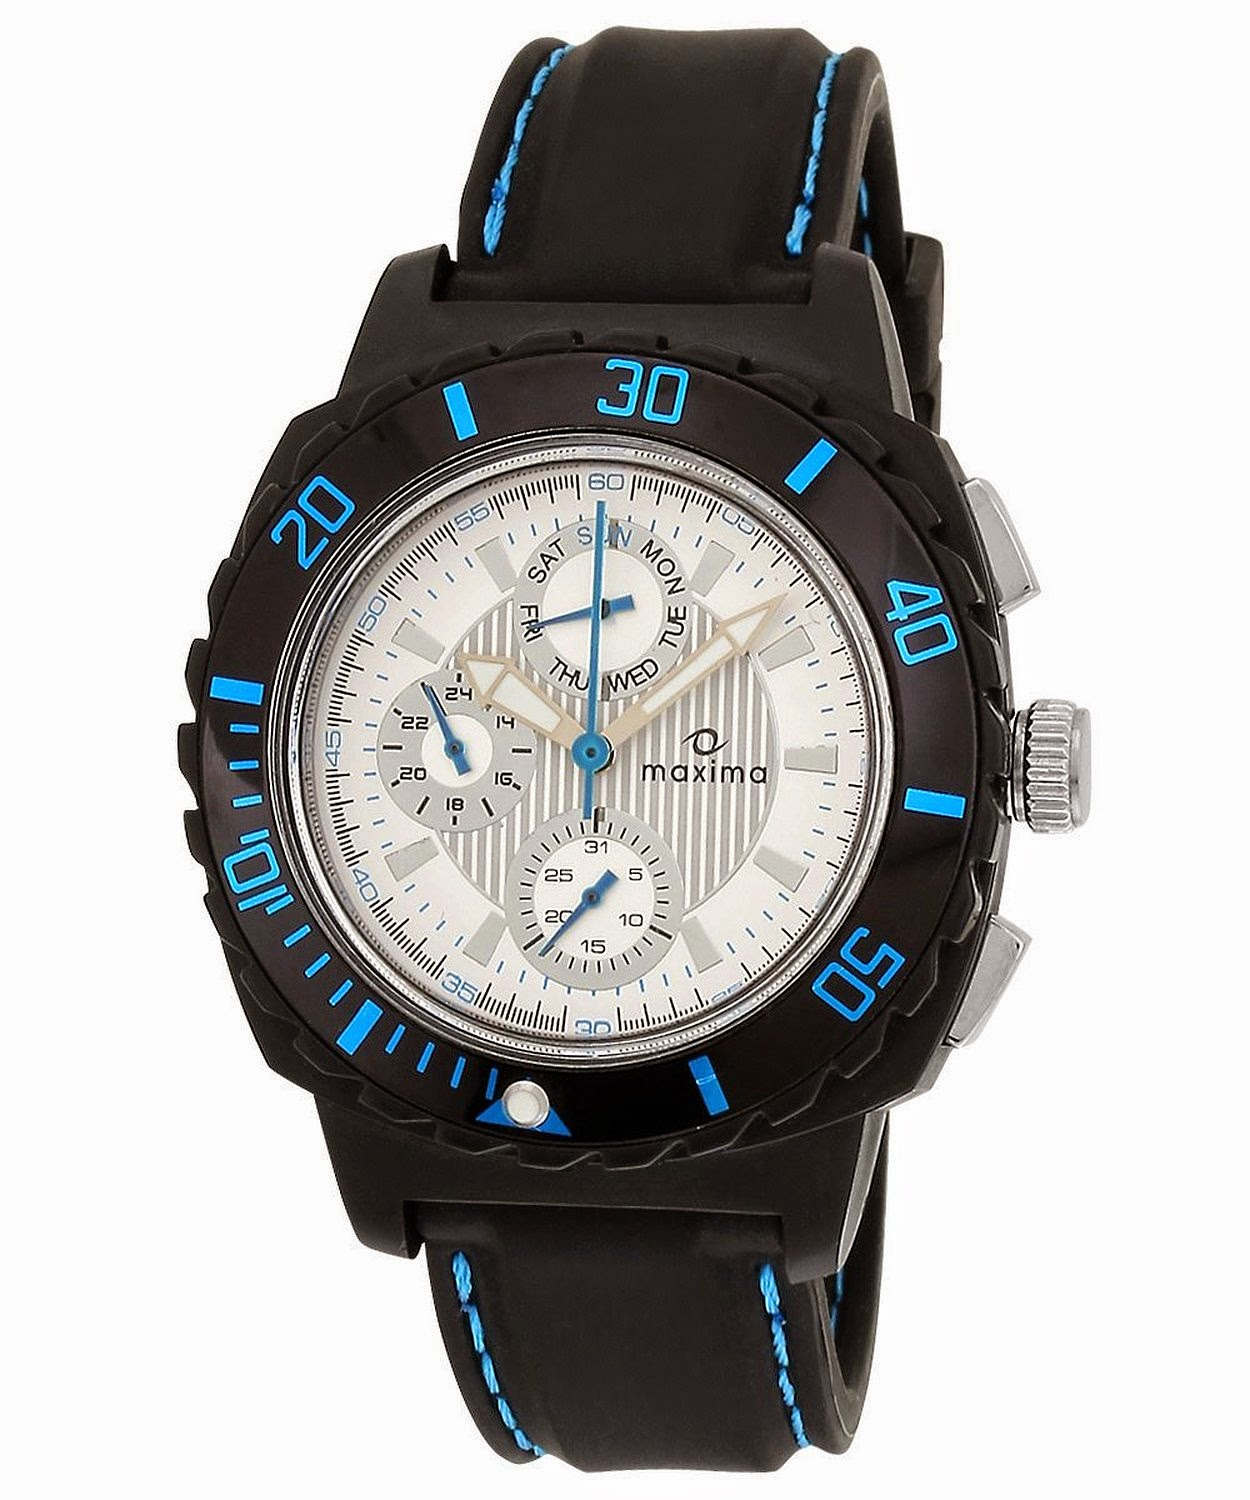 Amazon : Buy Maxima Hybrid Collection Analog Black Dial Men's Watch at Rs. 899 only